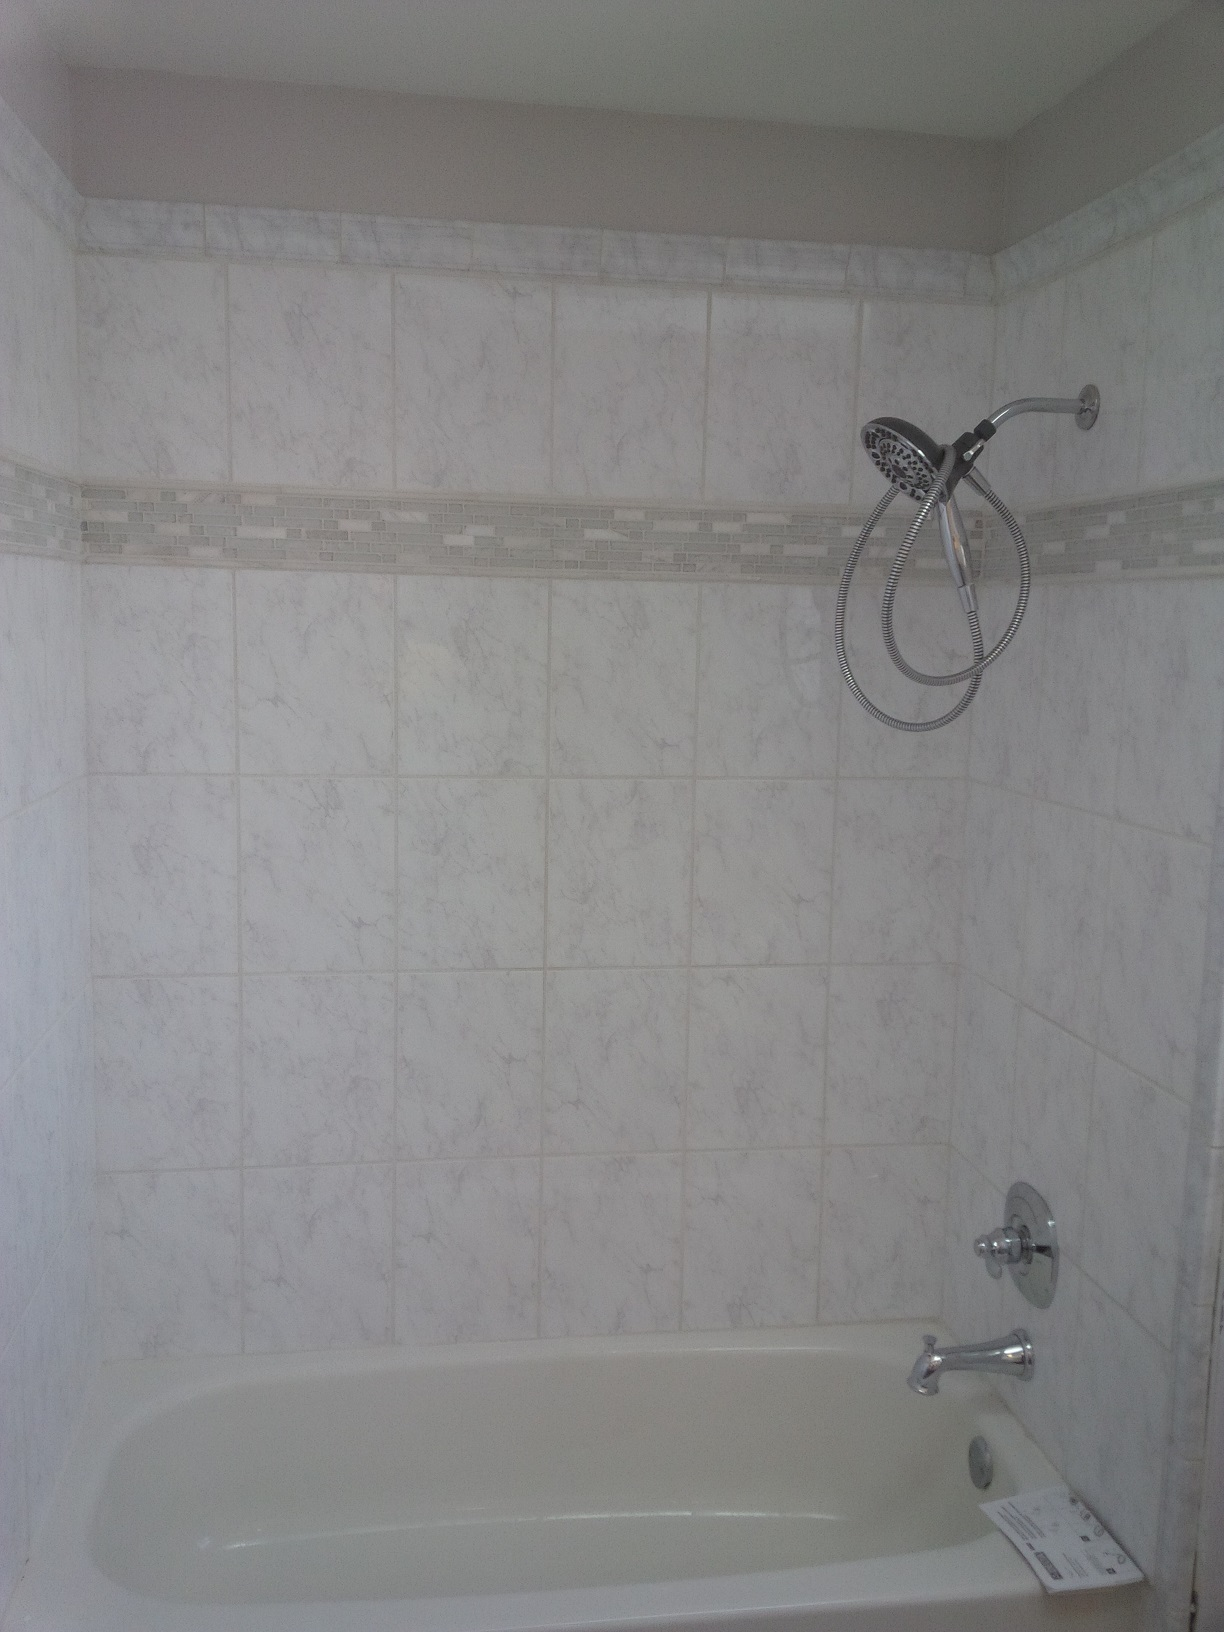 ... A Wide Selection Of Grout Colors Available But You Must Make Sure You  Get The Right Type Of Grout For Your Application. Standard Grout Comes In 2  Types, ...